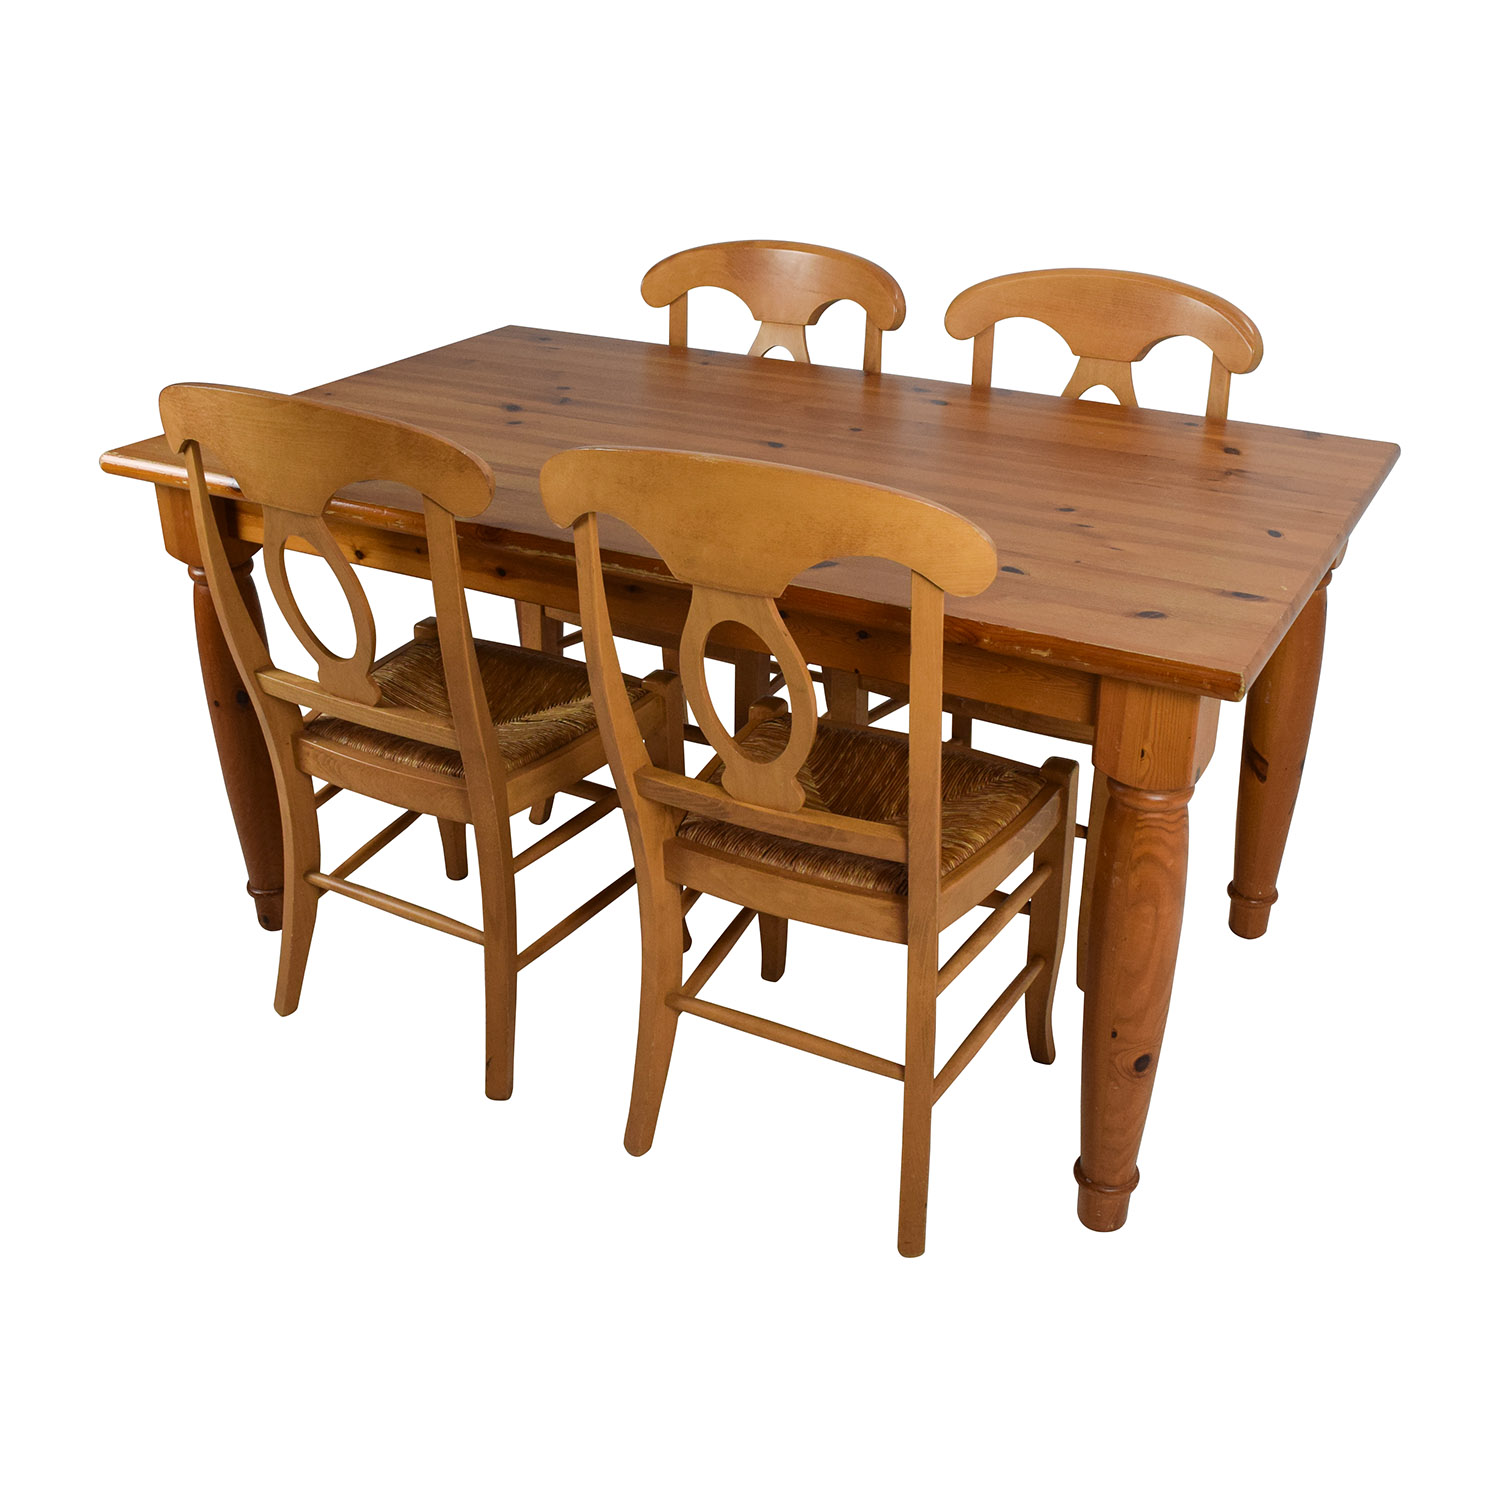 Pottery Barn Pottery Barn Dining Room Table with Four Chairs